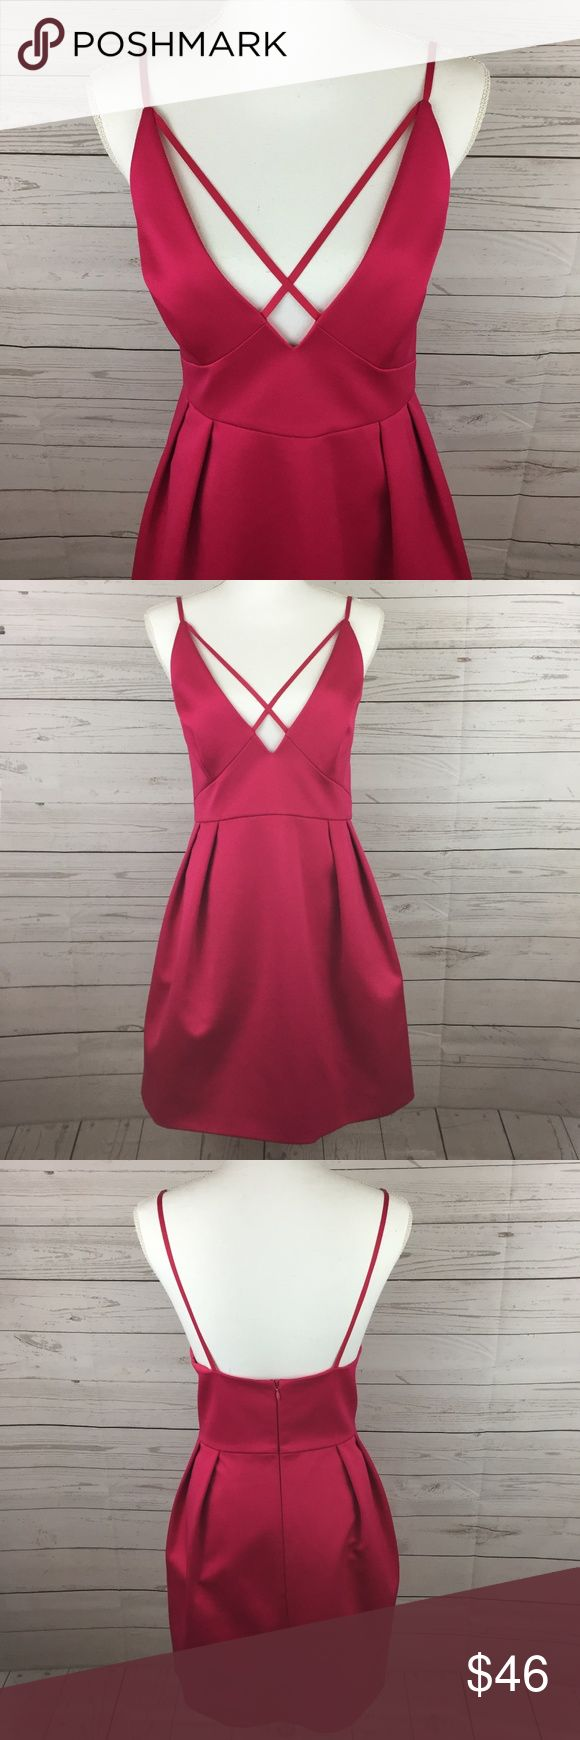 """TOPSHOP Sexy Low Cut Cross Front Dress SZ 10 Size: 10 Bust: 16"""" Waist: """" empire waist Hips: 22"""" Length: 34""""  Condition: New with Tags- Smoke/Pet Free How I Roll: No Trades/ No offsite Monkey Business/ I Love Bundles & Offers/ Please Ask Questions if you have them!   Can Be Worn With: Sky high heels!  Don't forget your on-trend accessories- Check out our jewelry pieces to complete your look! *All measurements taken while item is laid flat and across the front.  #SR- 170917 Topshop Dresses"""